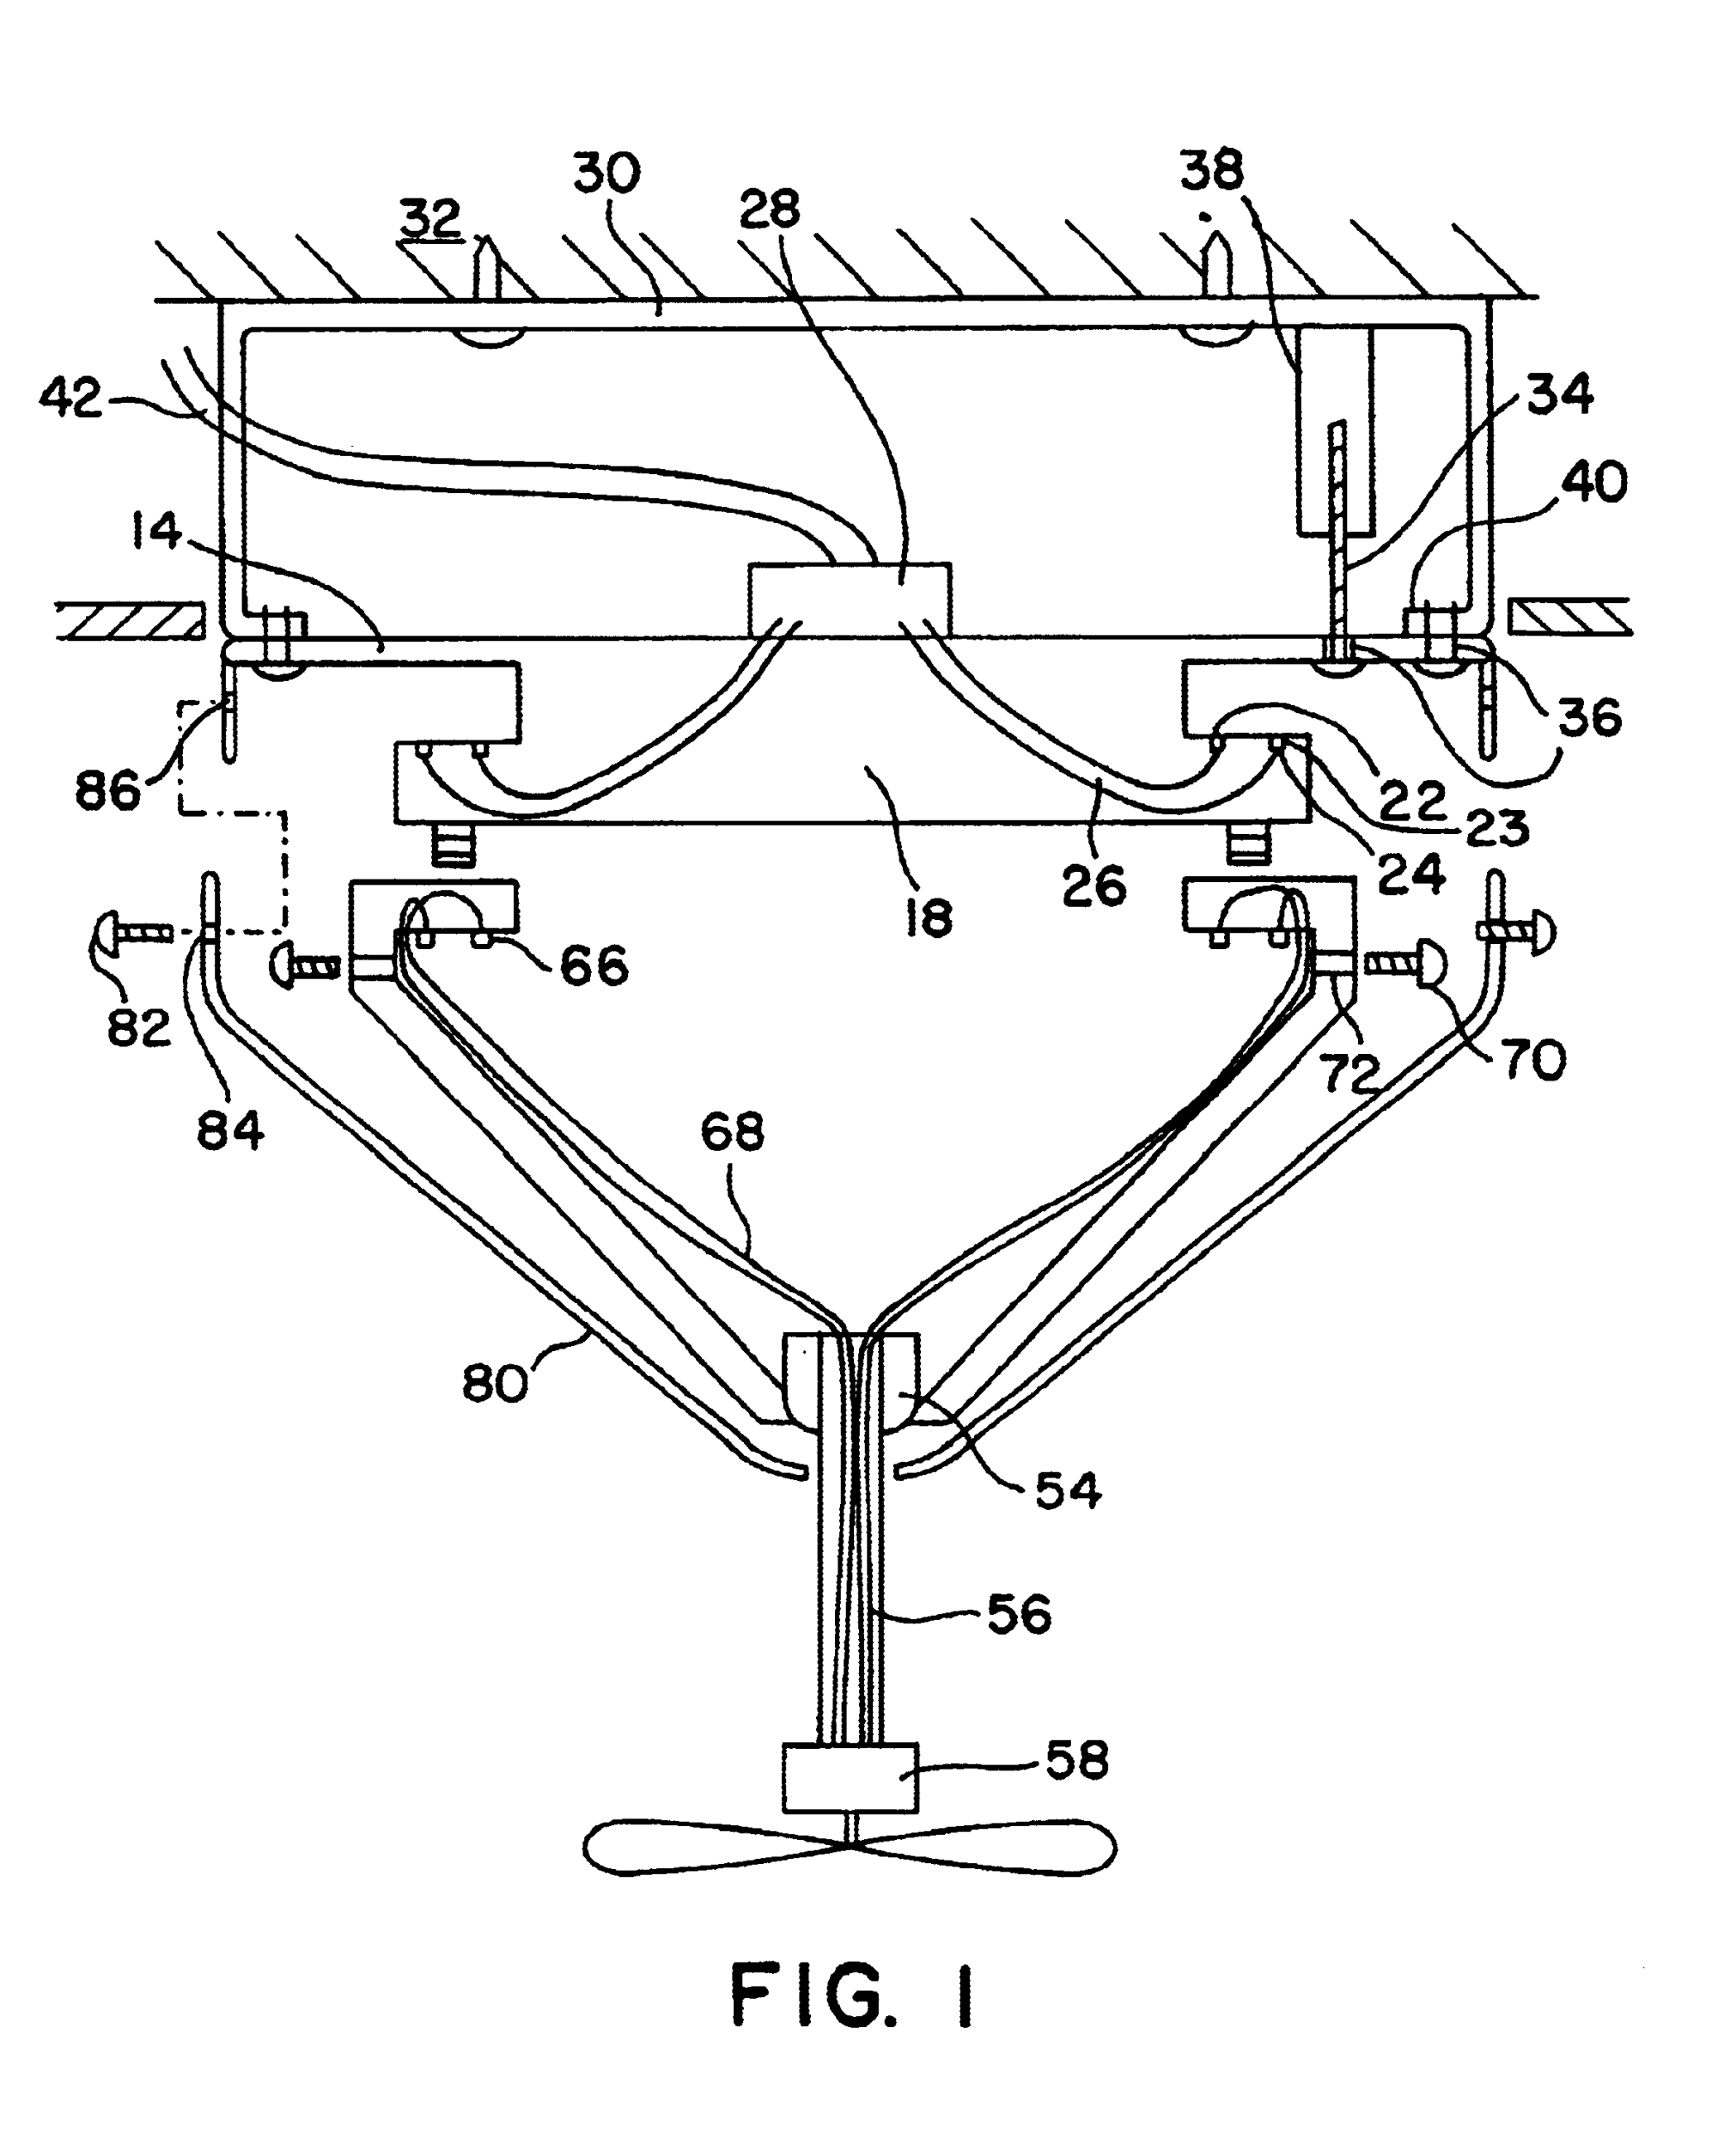 hight resolution of wiring ceiling fan google search electrical home pinterest ceiling fan patent us6634901 quick connect device for electrical fixture